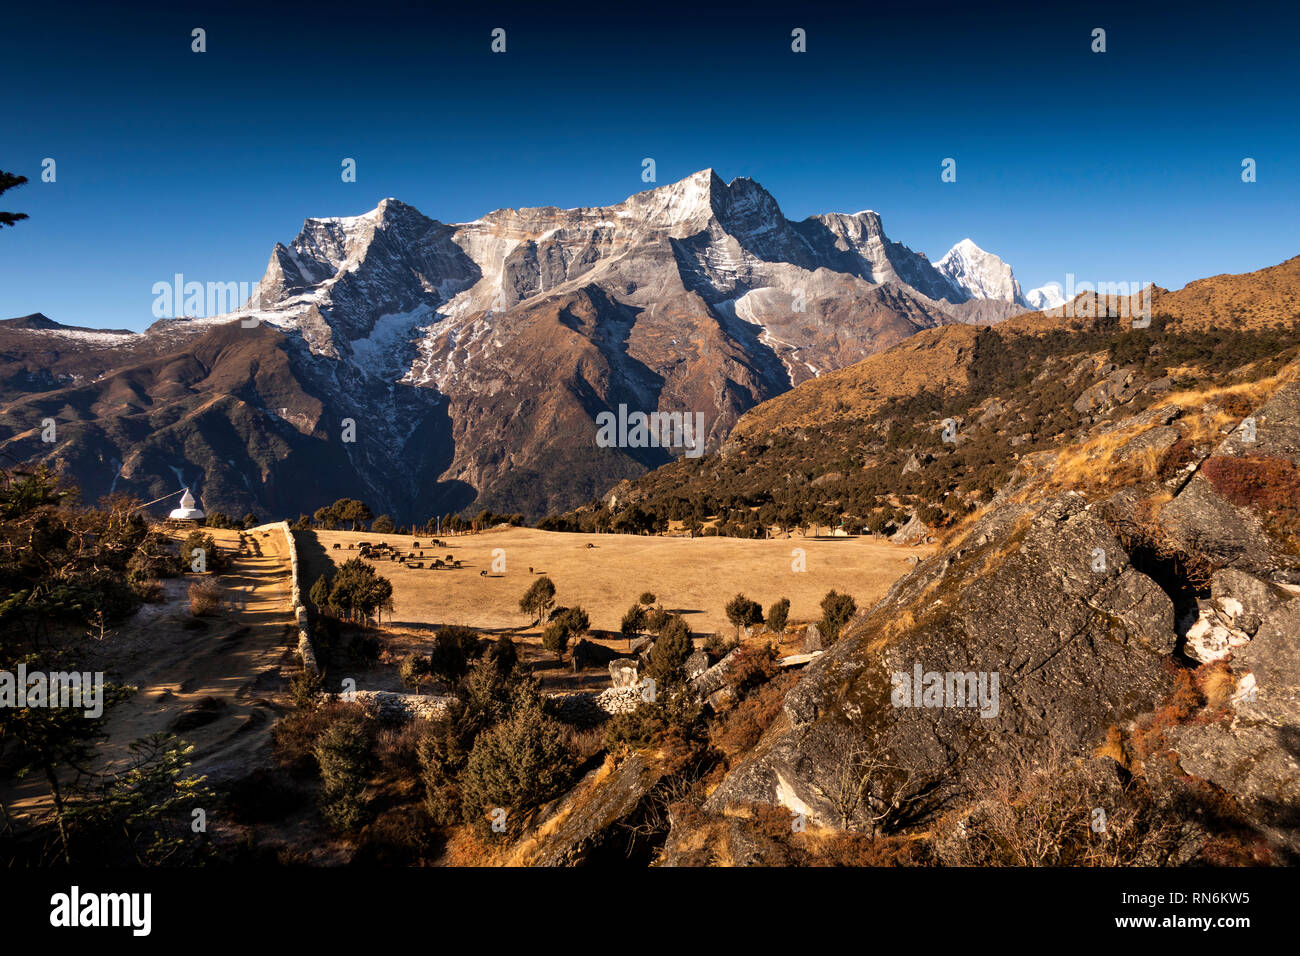 Nepal, Everest Base Camp Trek, Namche Bazaar, elevated pasture at Government Yak Breeding Farm opposite Kongde Ri peak Stock Photo